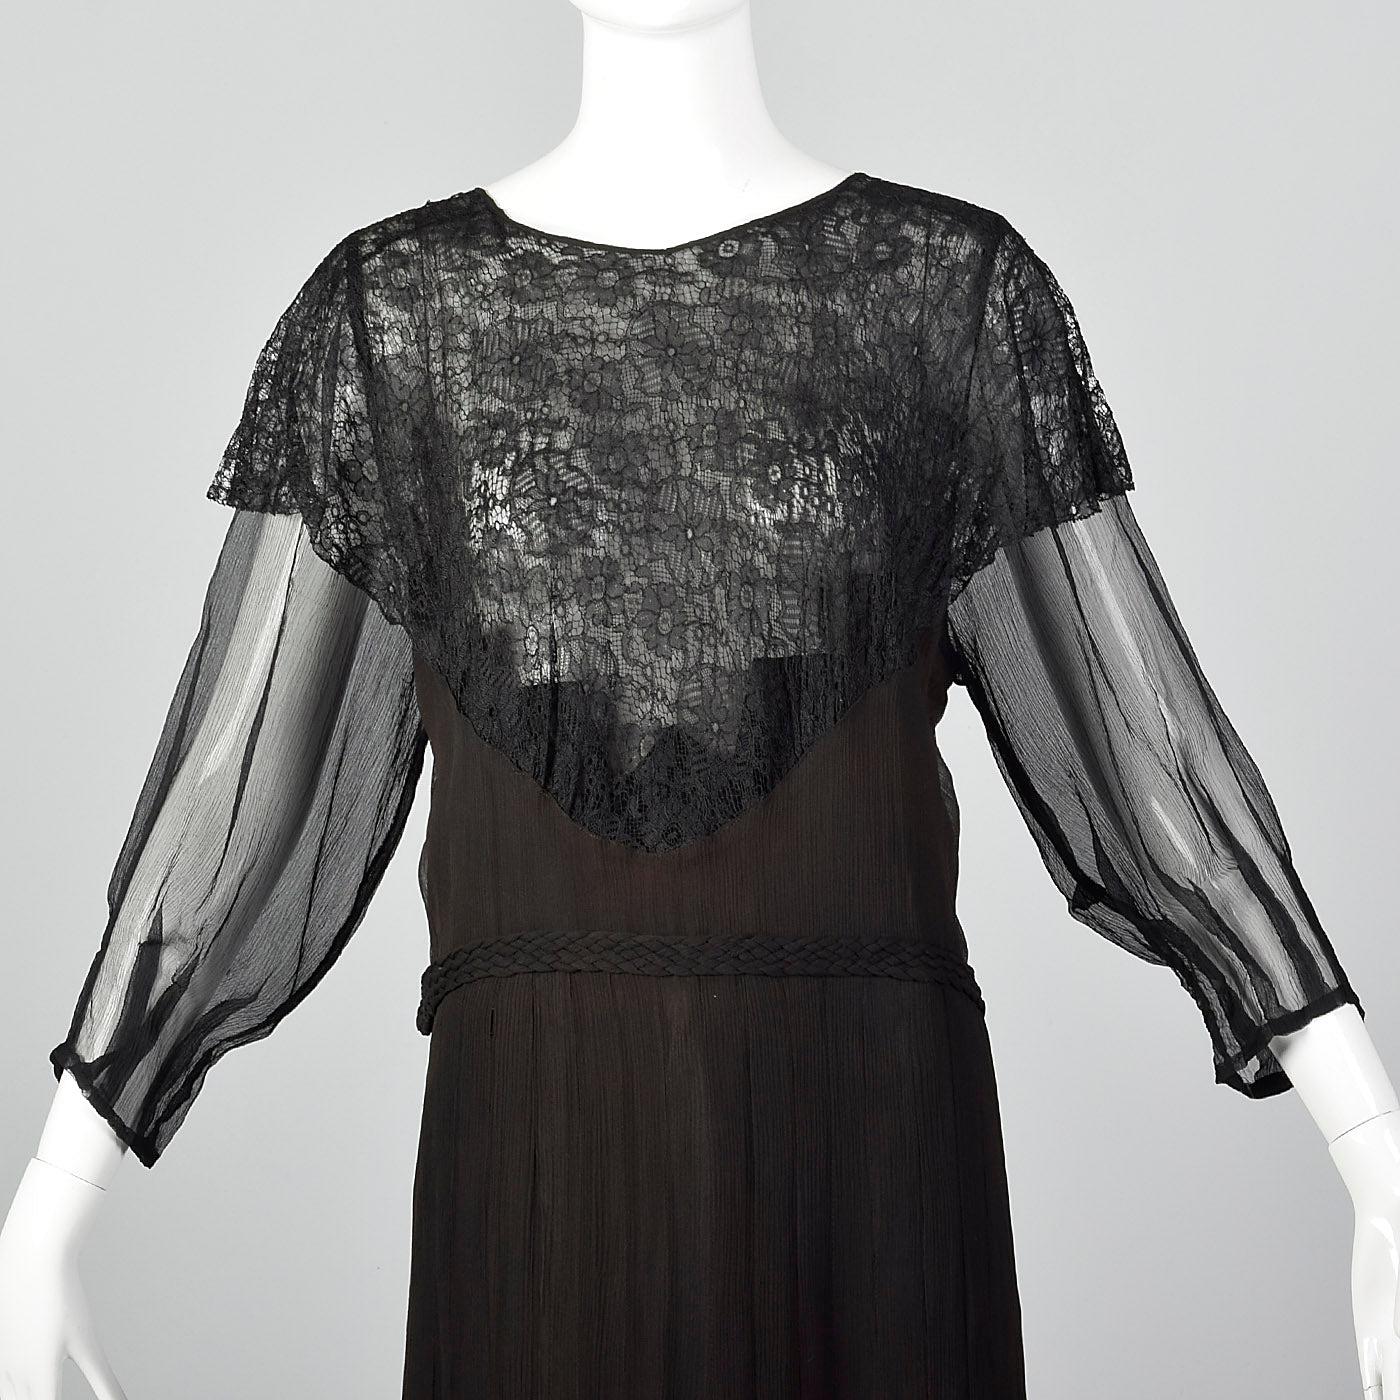 1930s Black Silk Dress with Sheer Lace Bust Panel